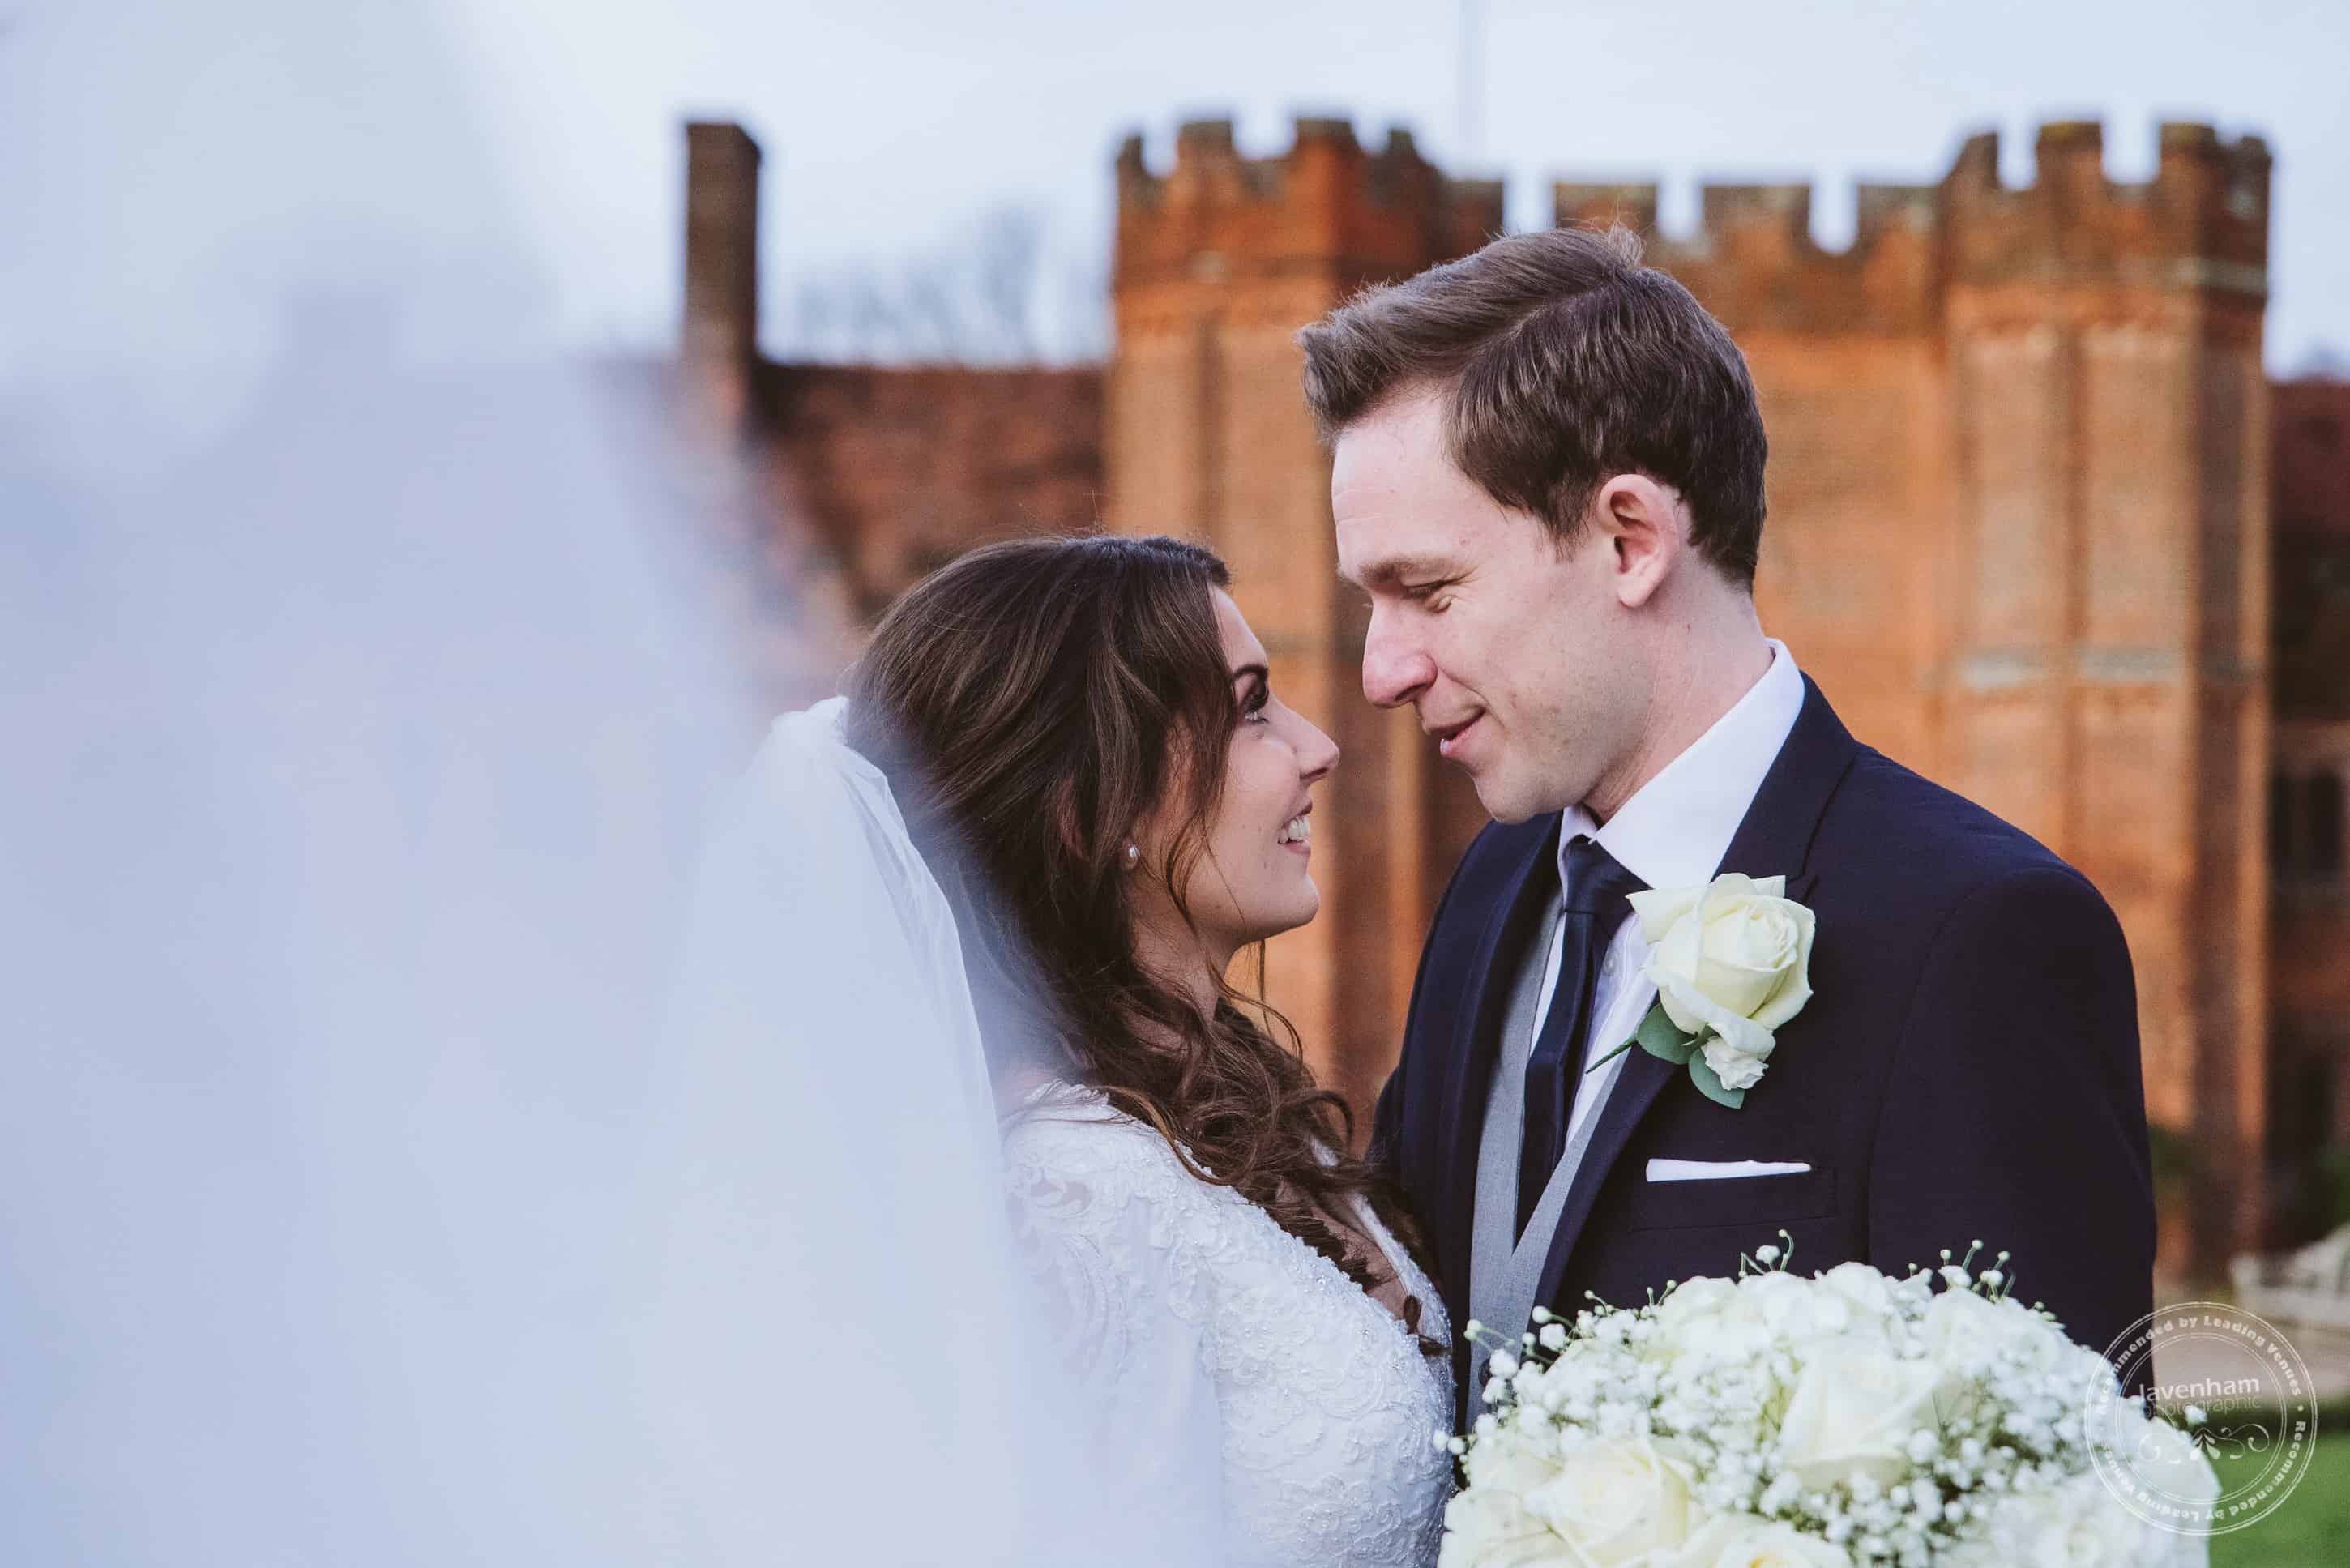 221219 Leez Priory Wedding Photoraphy 077